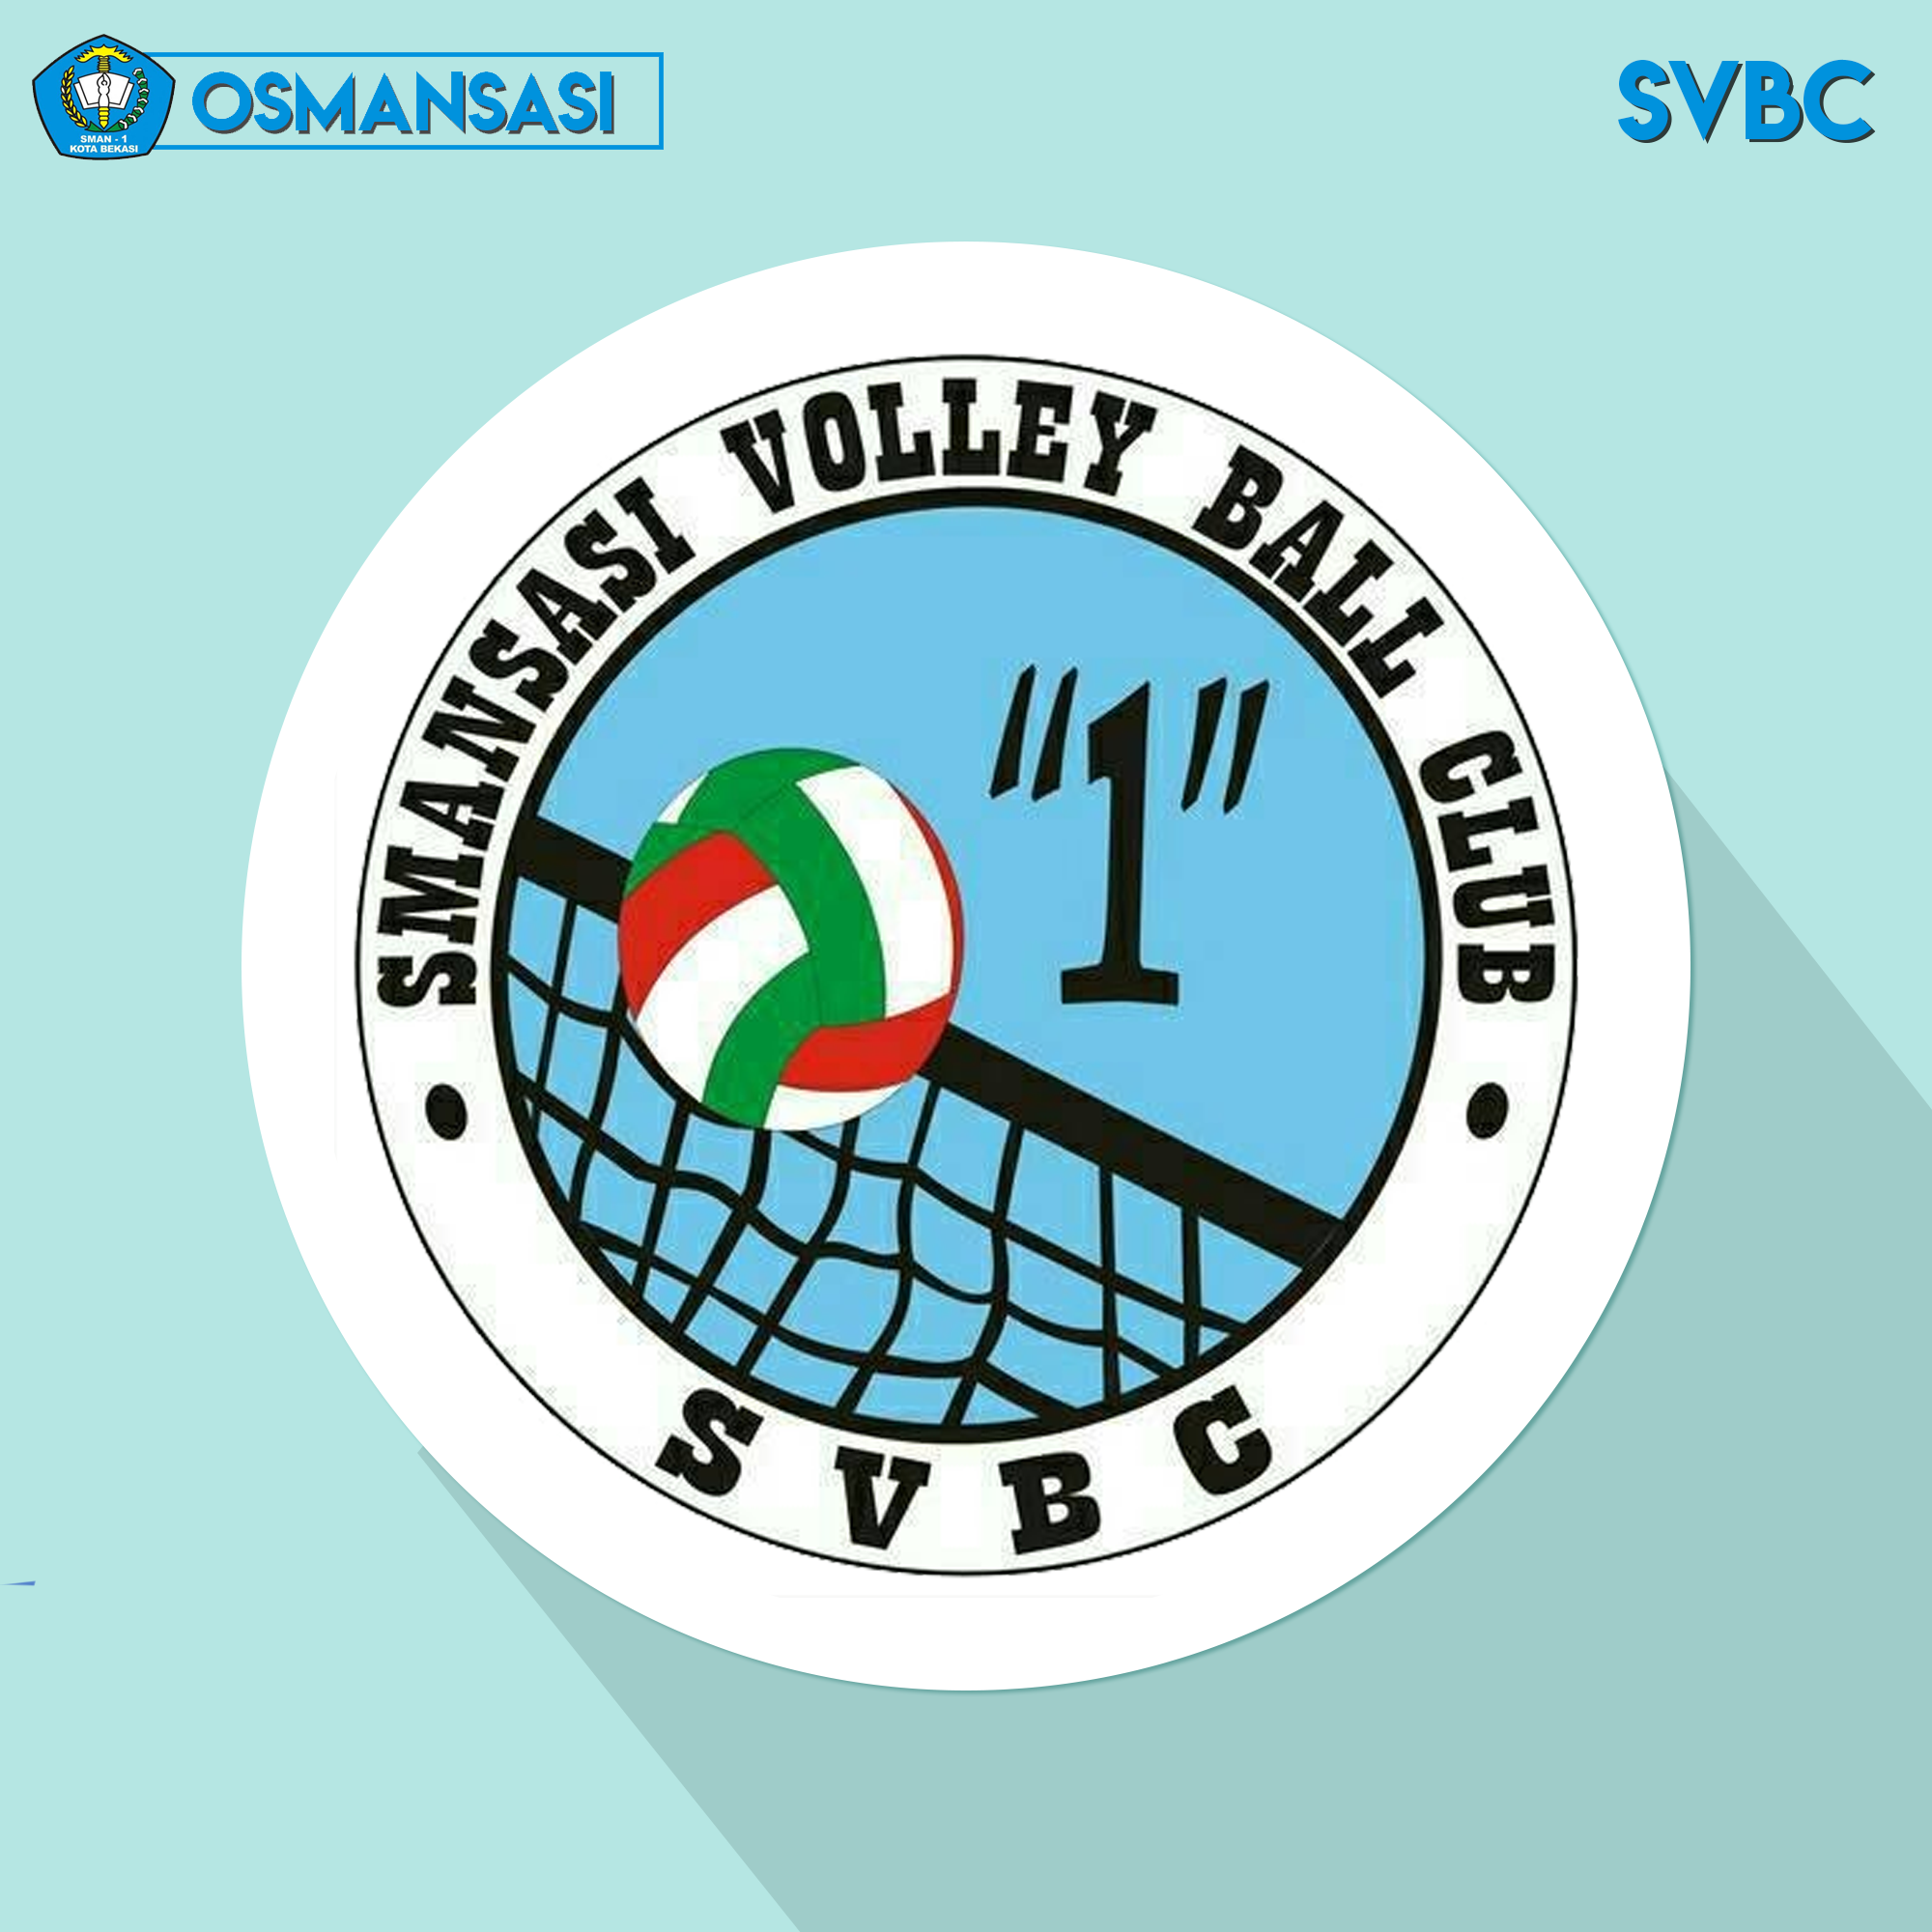 Smansasi Vollyball Club